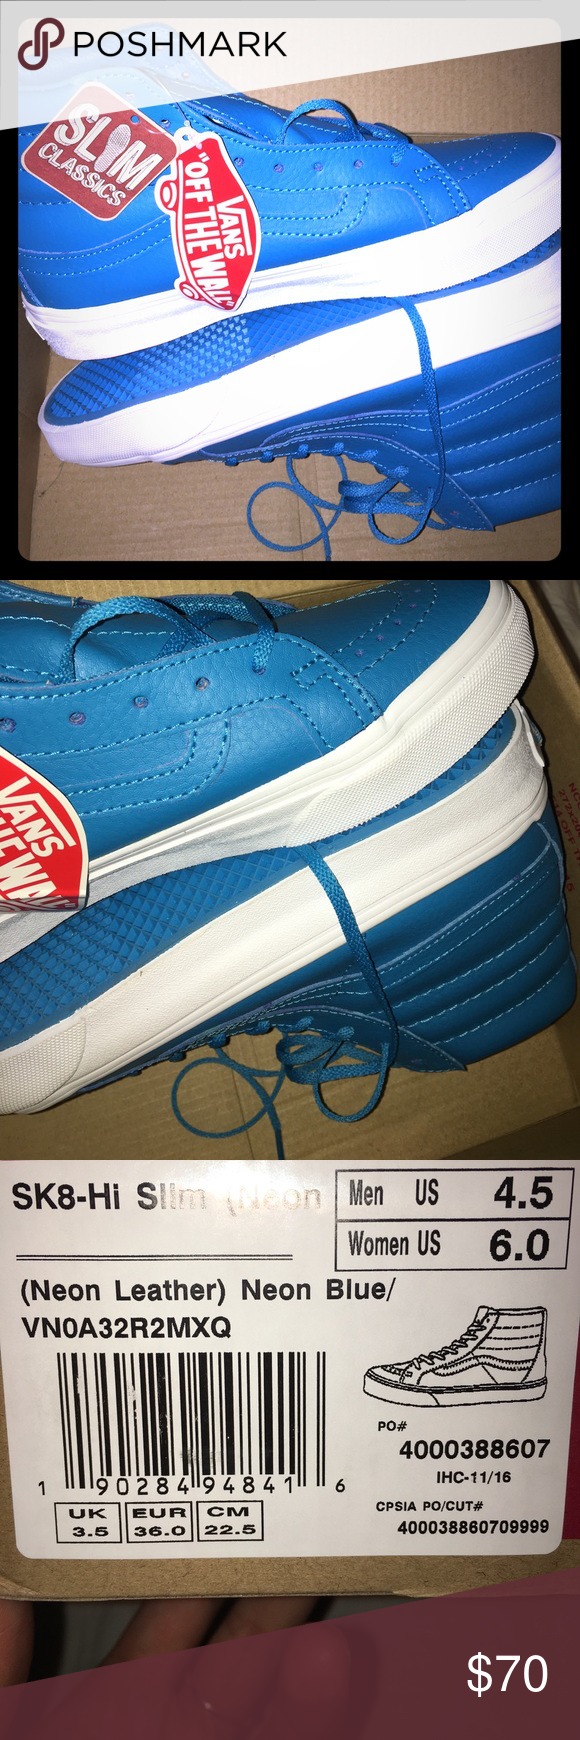 41208089be5e5e Sk8-hi slim leather neon blue Brand new hi top skate shoes. Neon leather